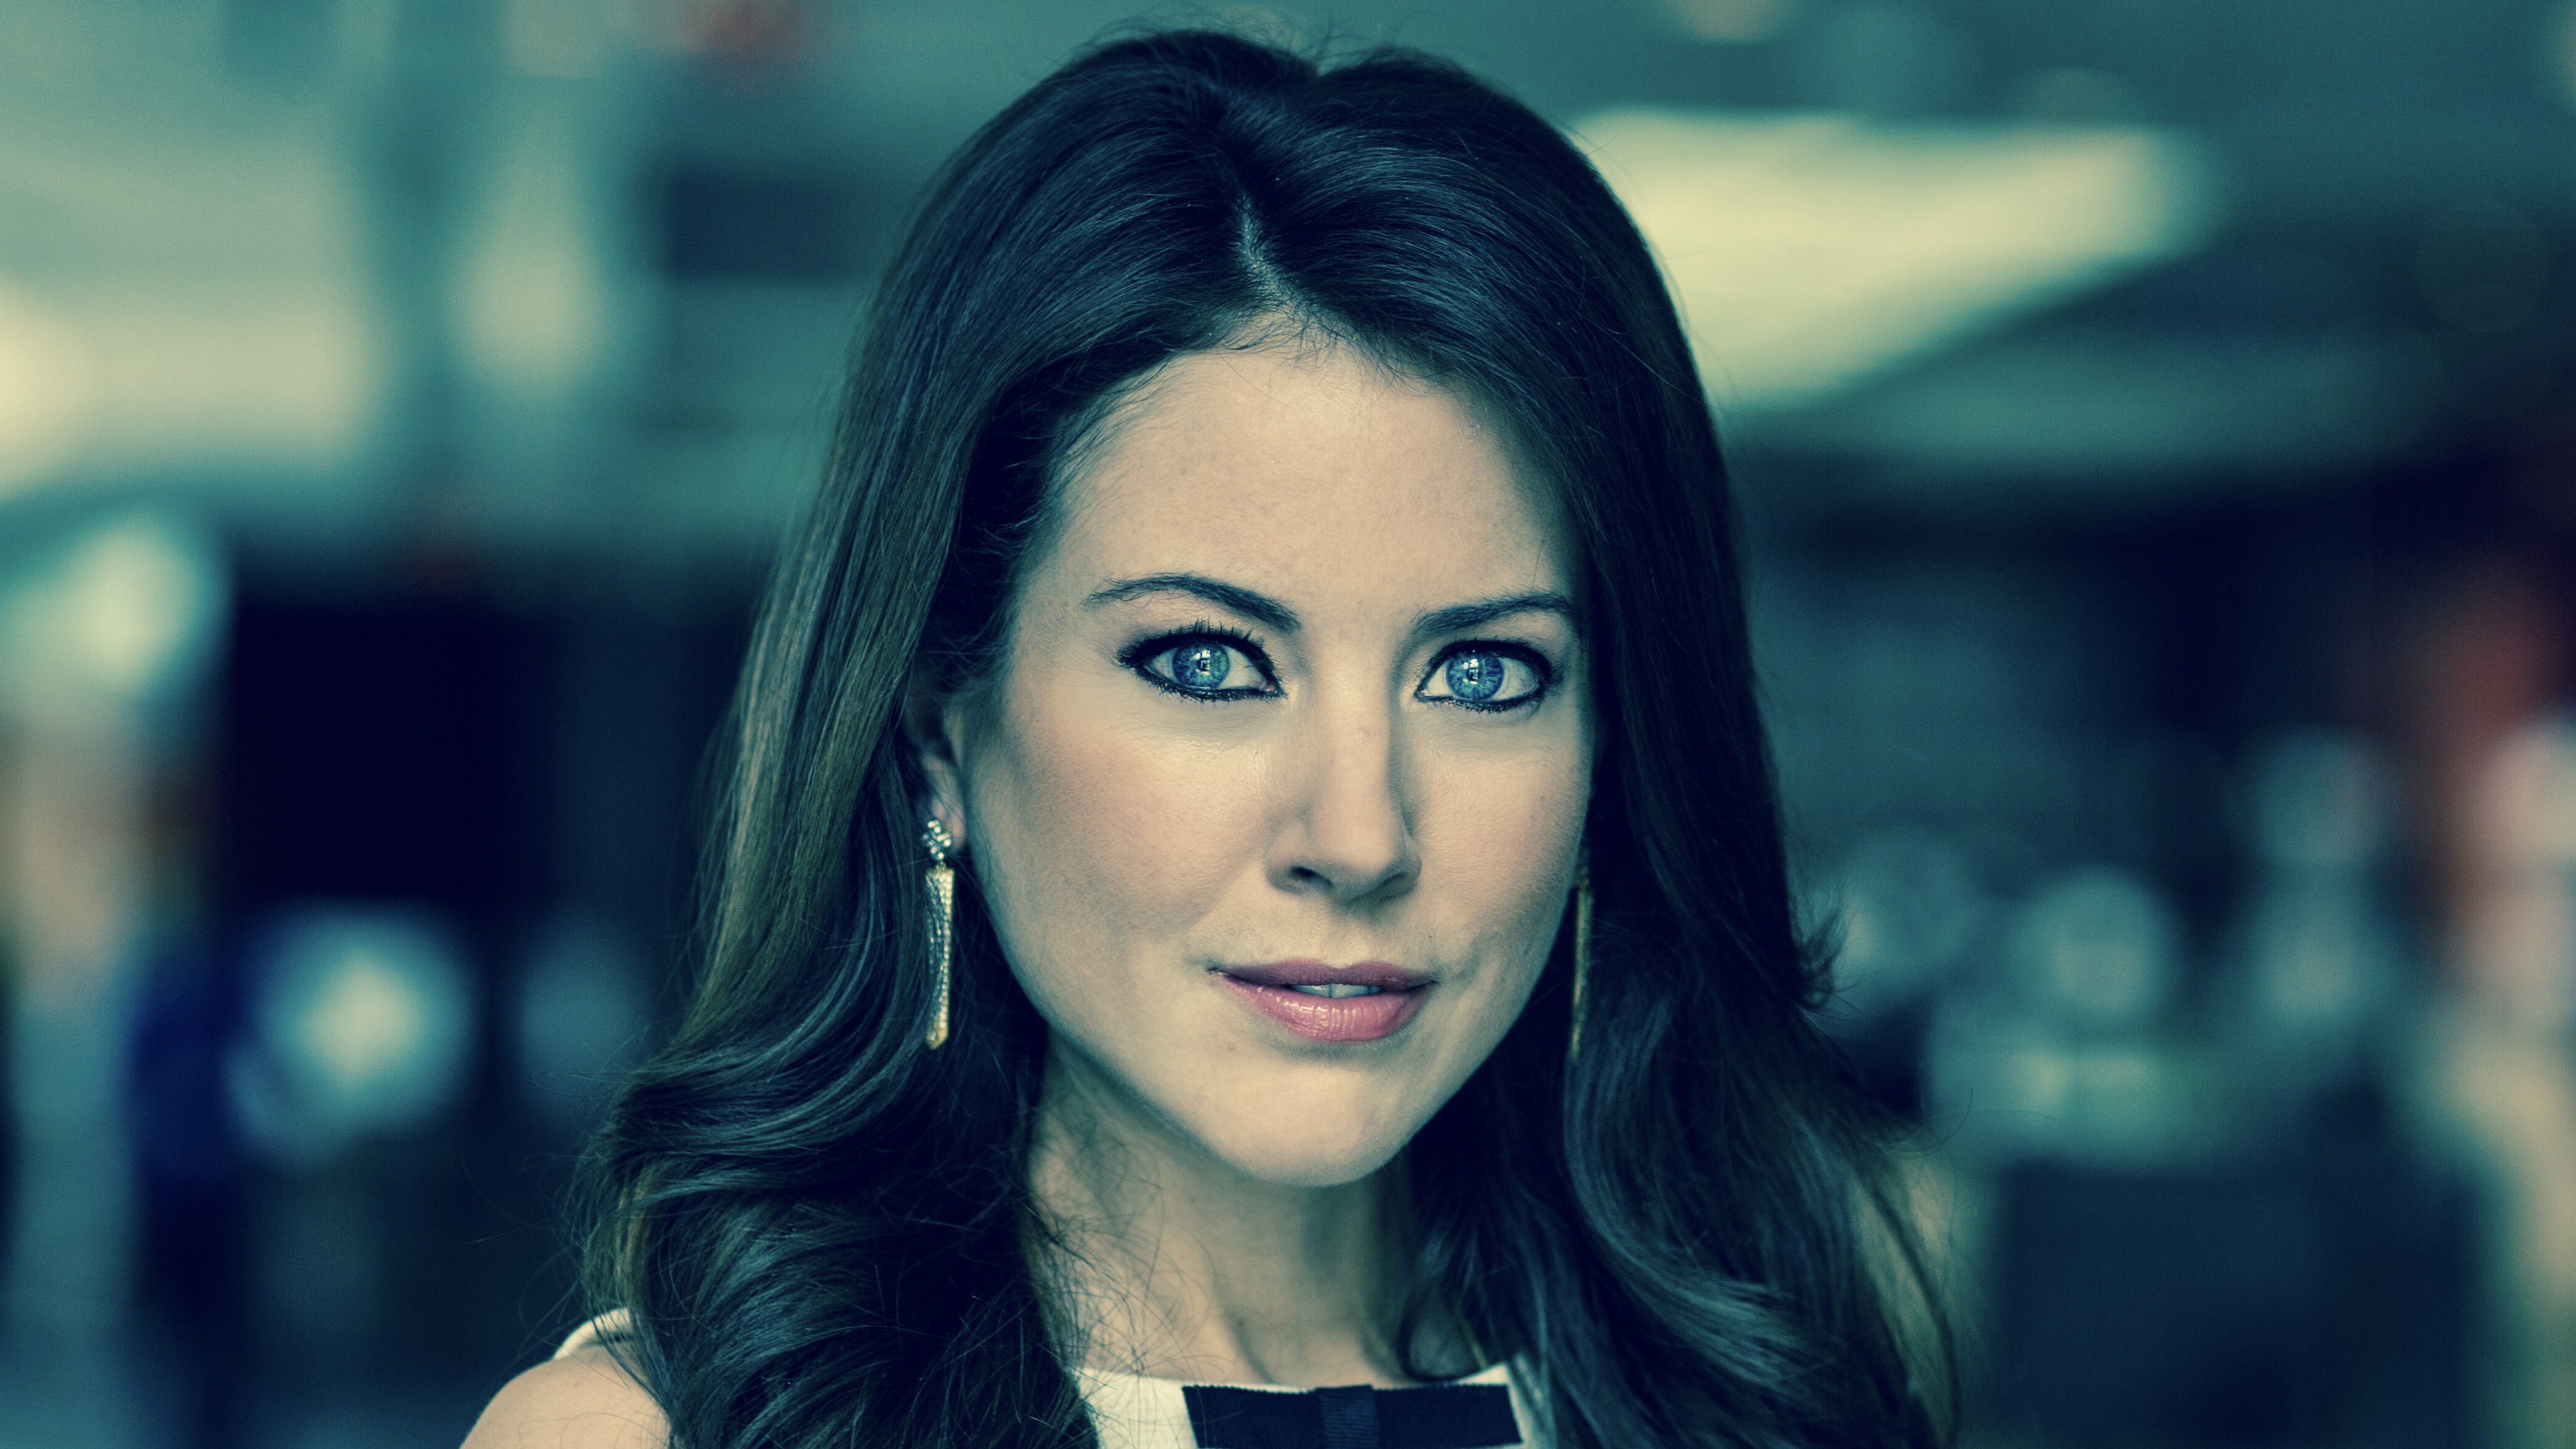 Julia Chatterley Joins Cnn To Anchor New Show